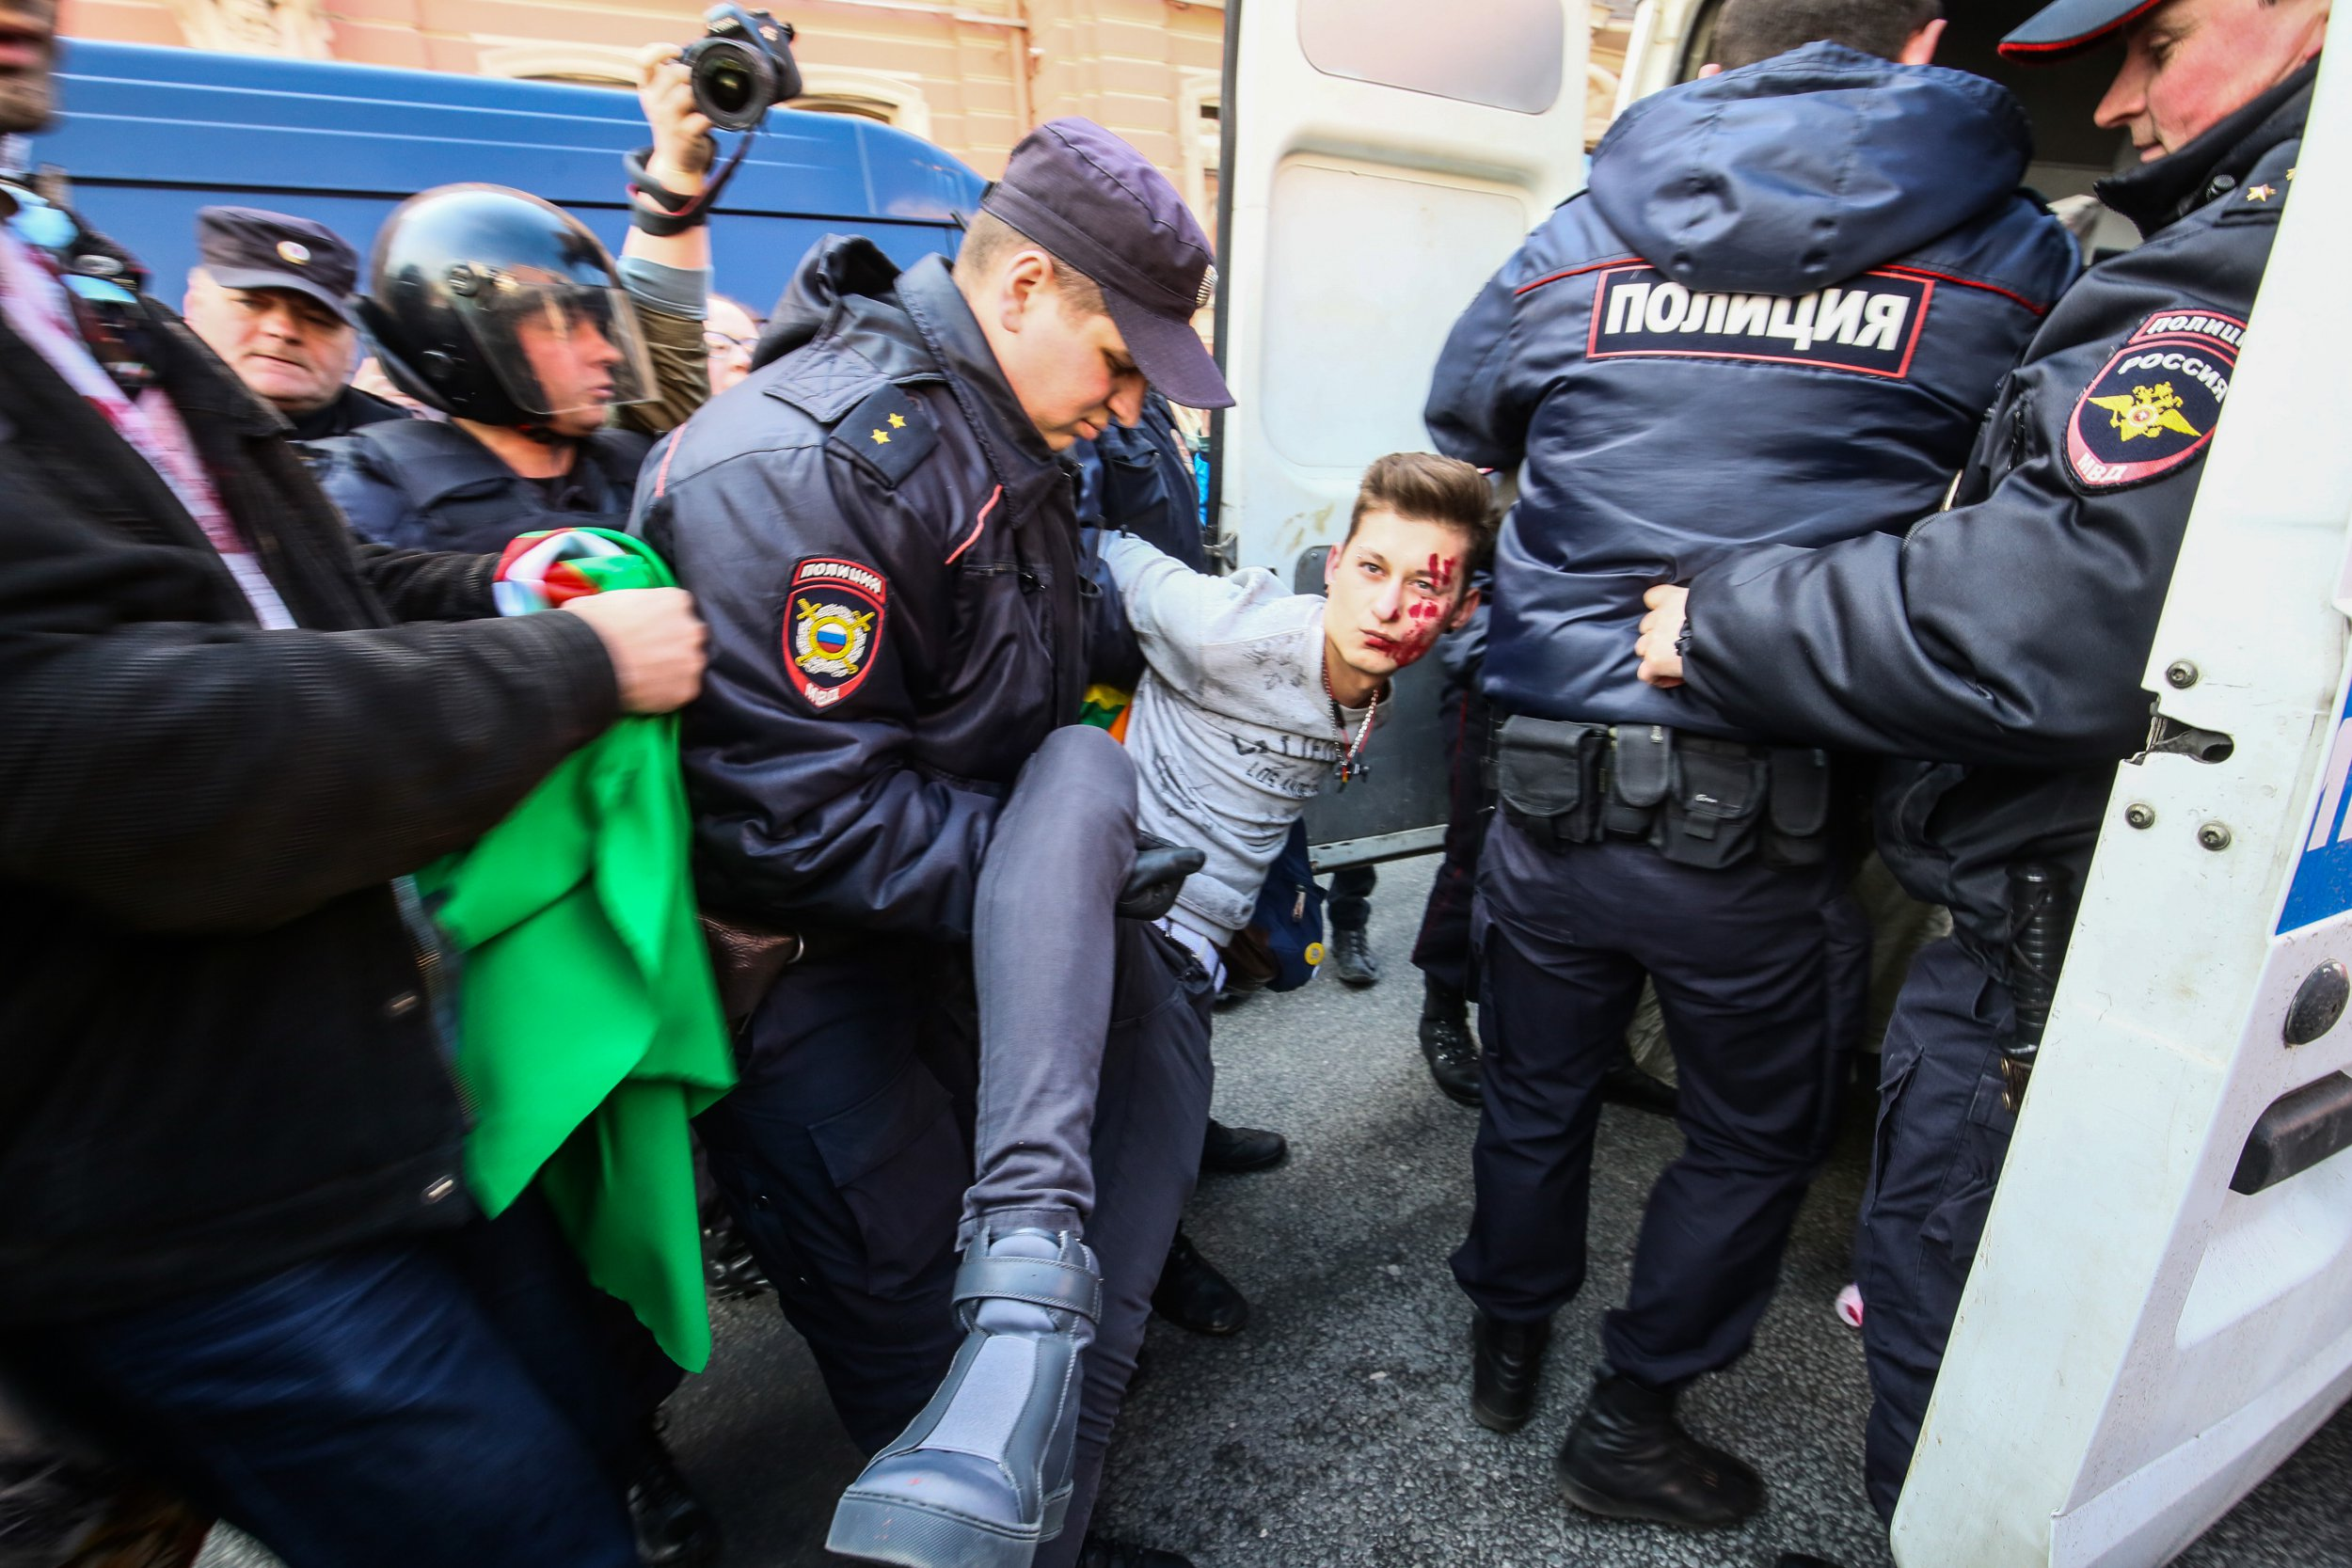 Over 40 gay men saved from Chechnya's homophobic 'purge'